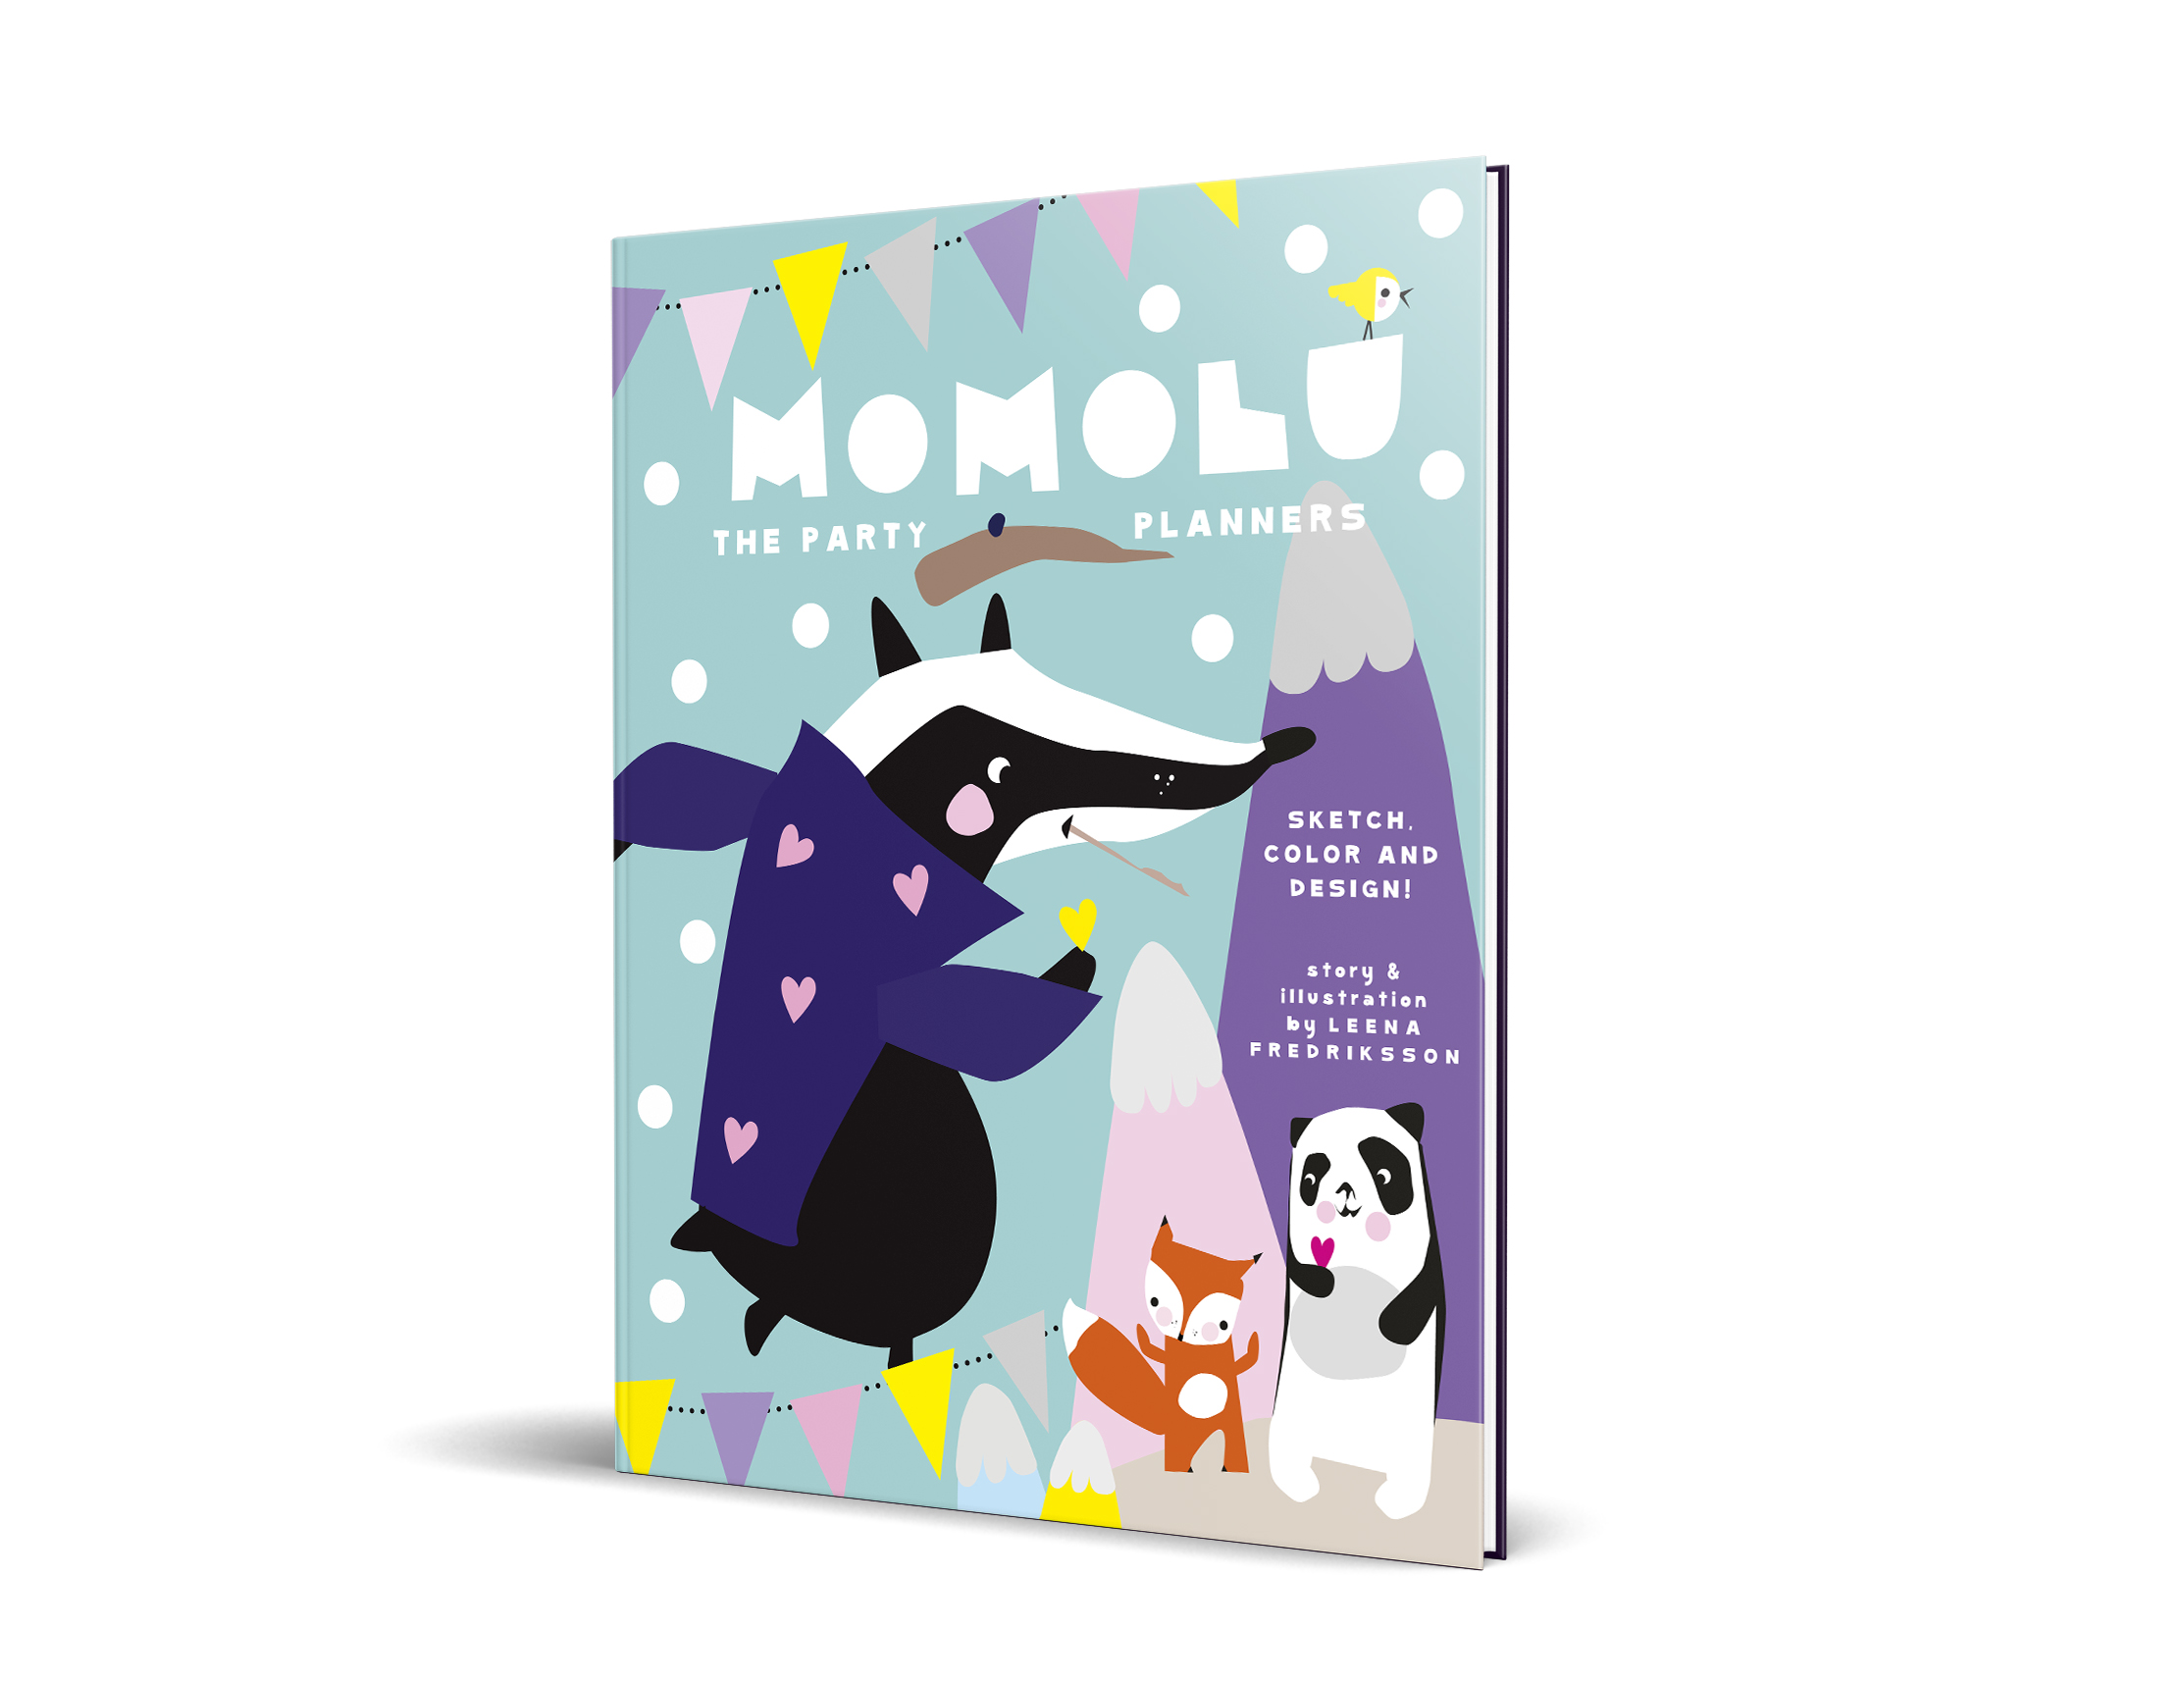 MOMOLU: The Party Planners (2018)